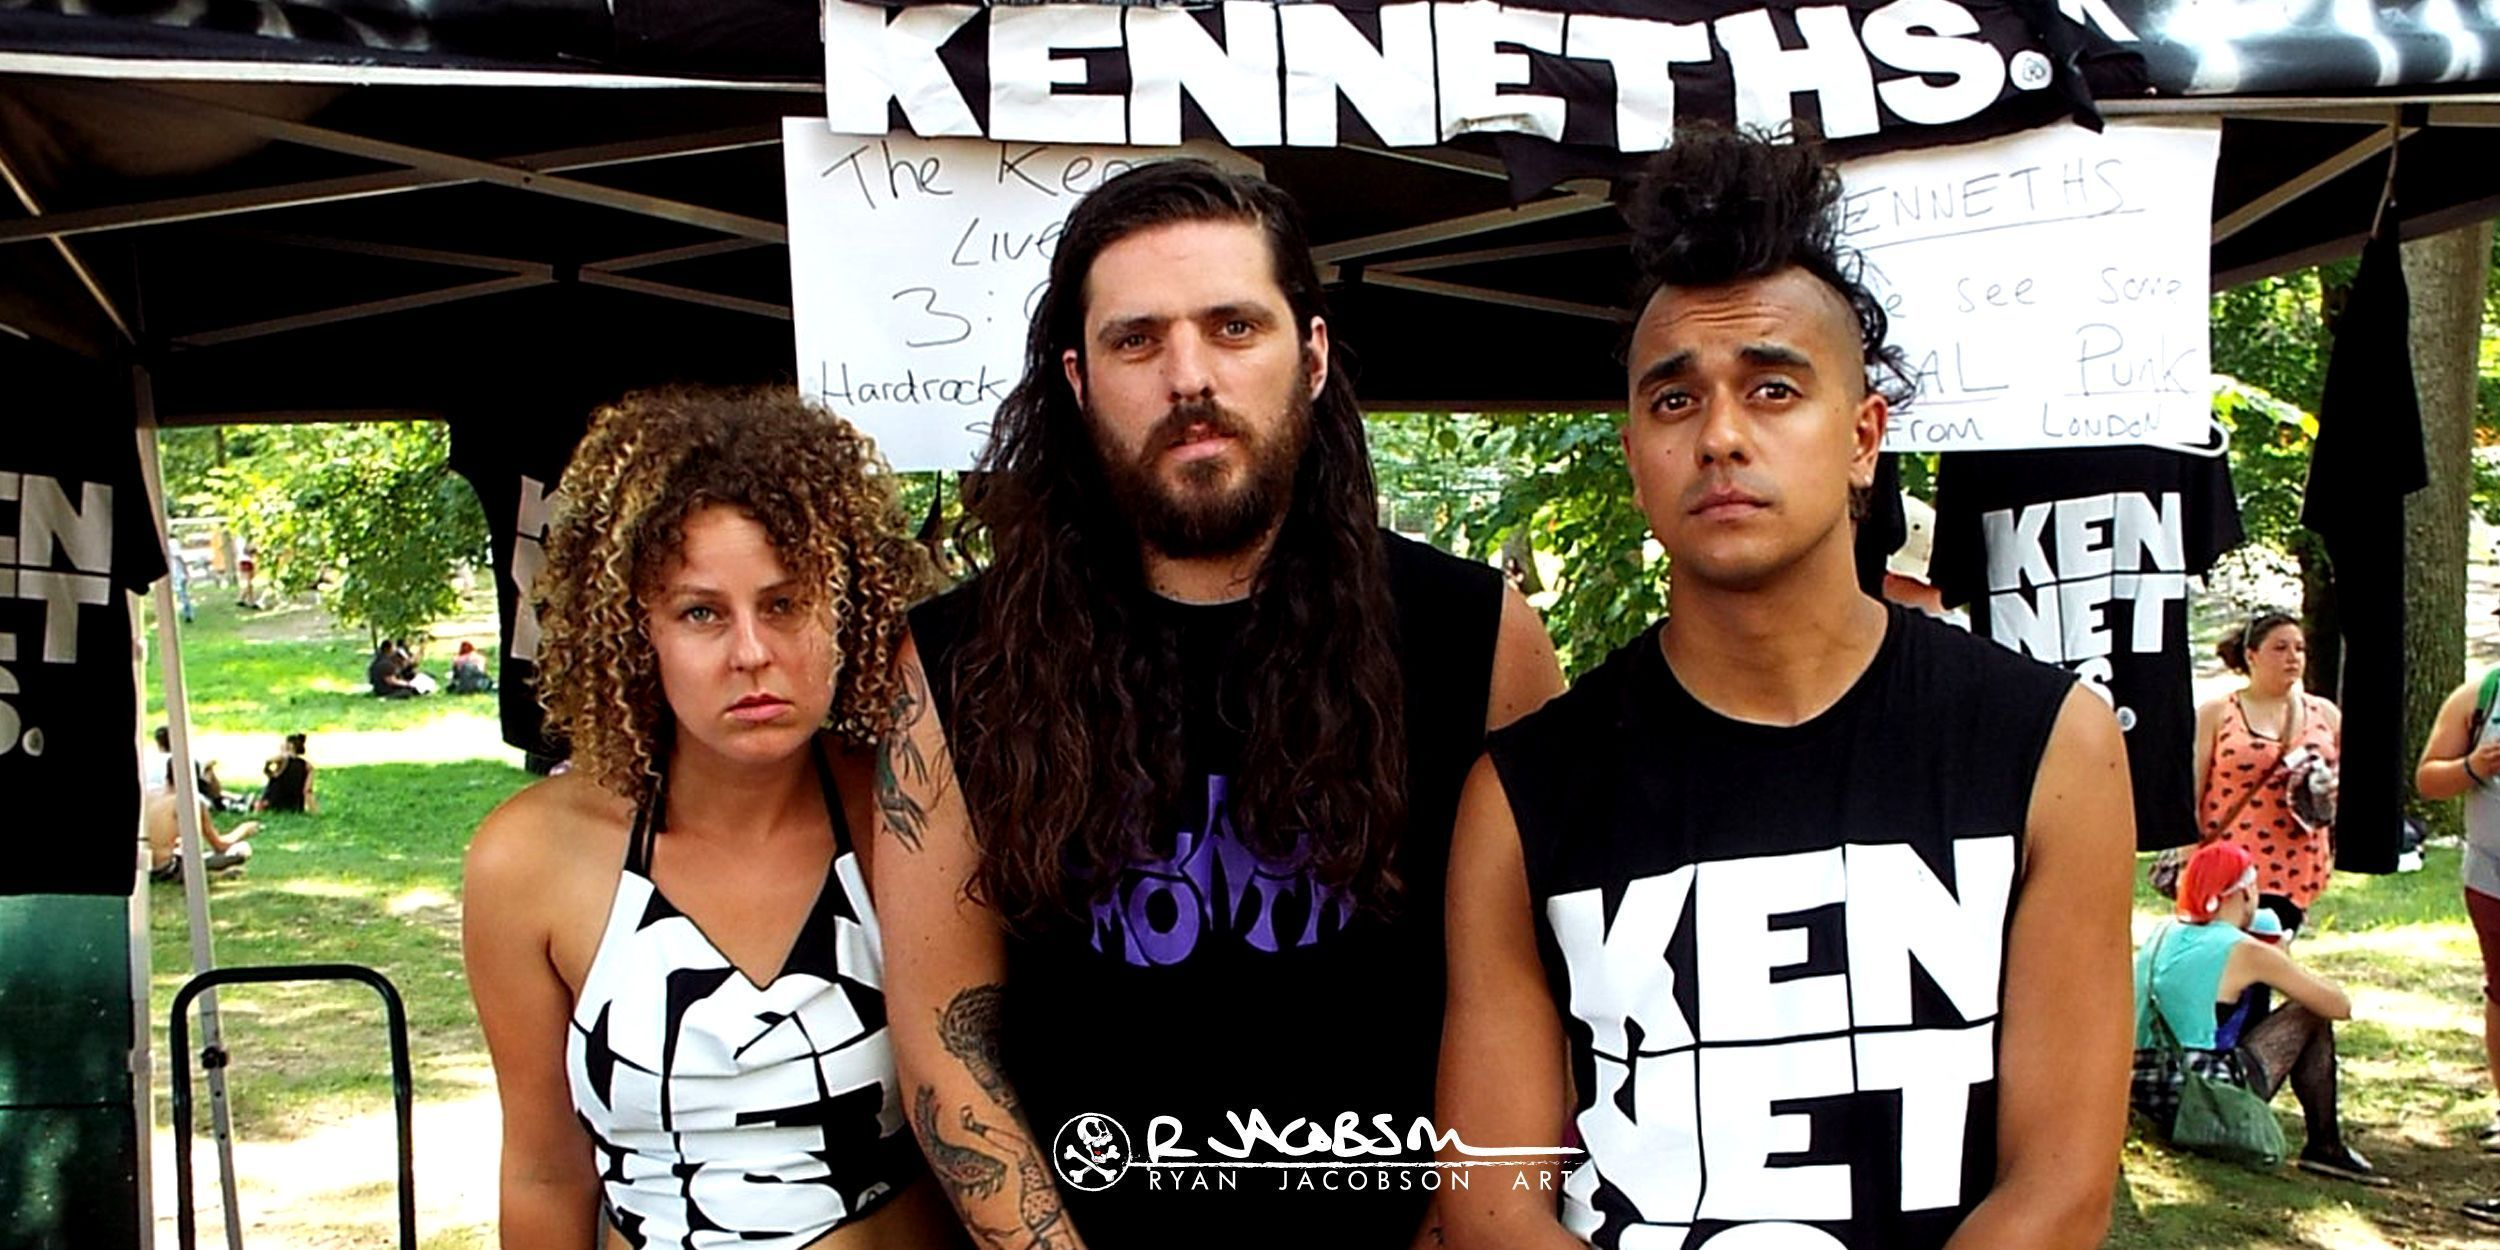 The kenneths want to know what happened to radio